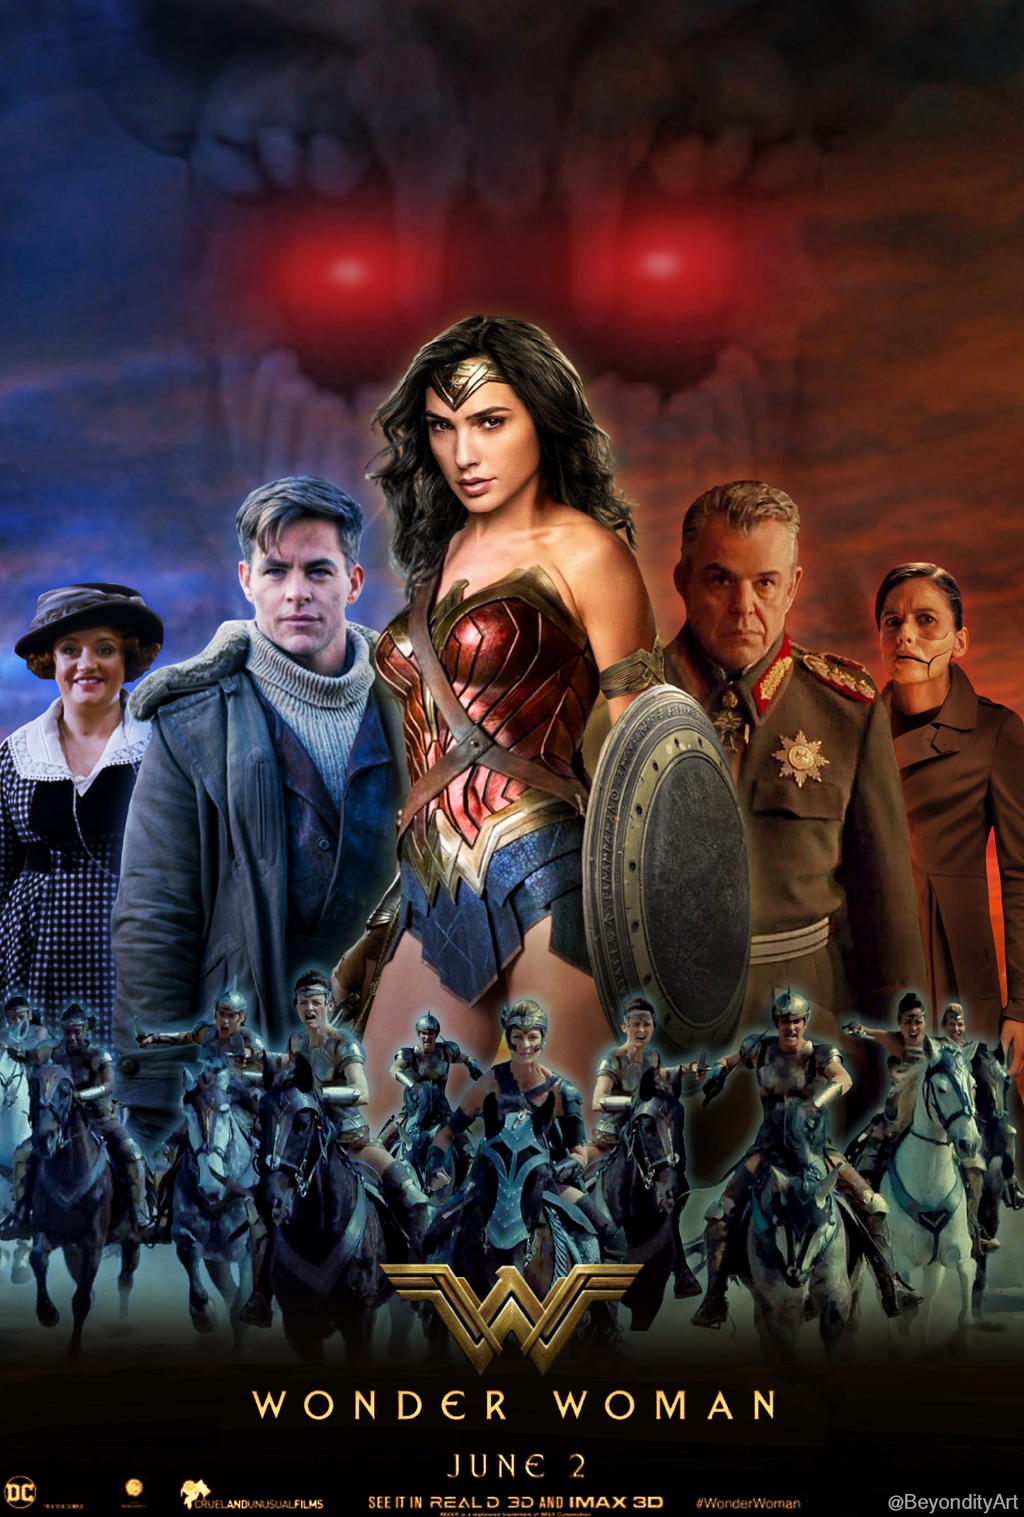 Las ultimas peliculas que has visto Wonder_woman_poster_by_beyondityart-db8idpe